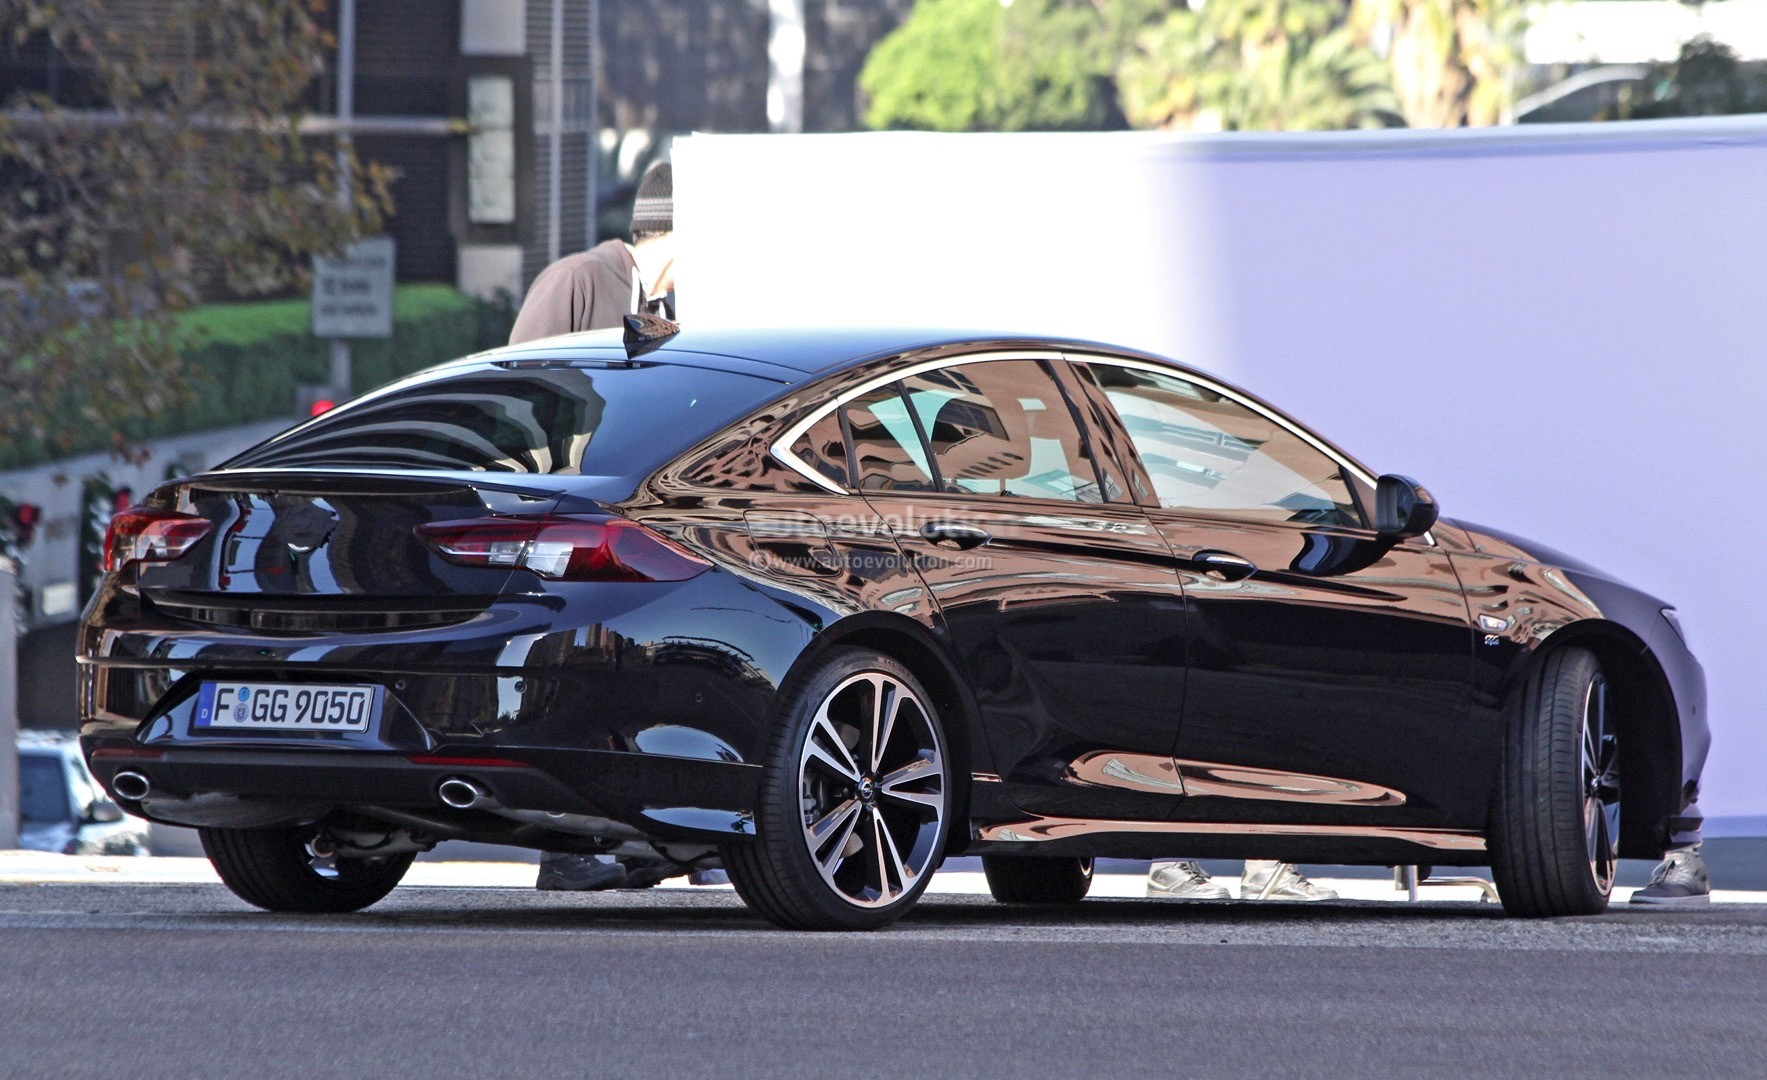 Opel Insignia Opc 2018 >> 2017 Opel Insignia Price Starts From EUR 25,940 For The Sedan, Wagon From 26,940 - autoevolution